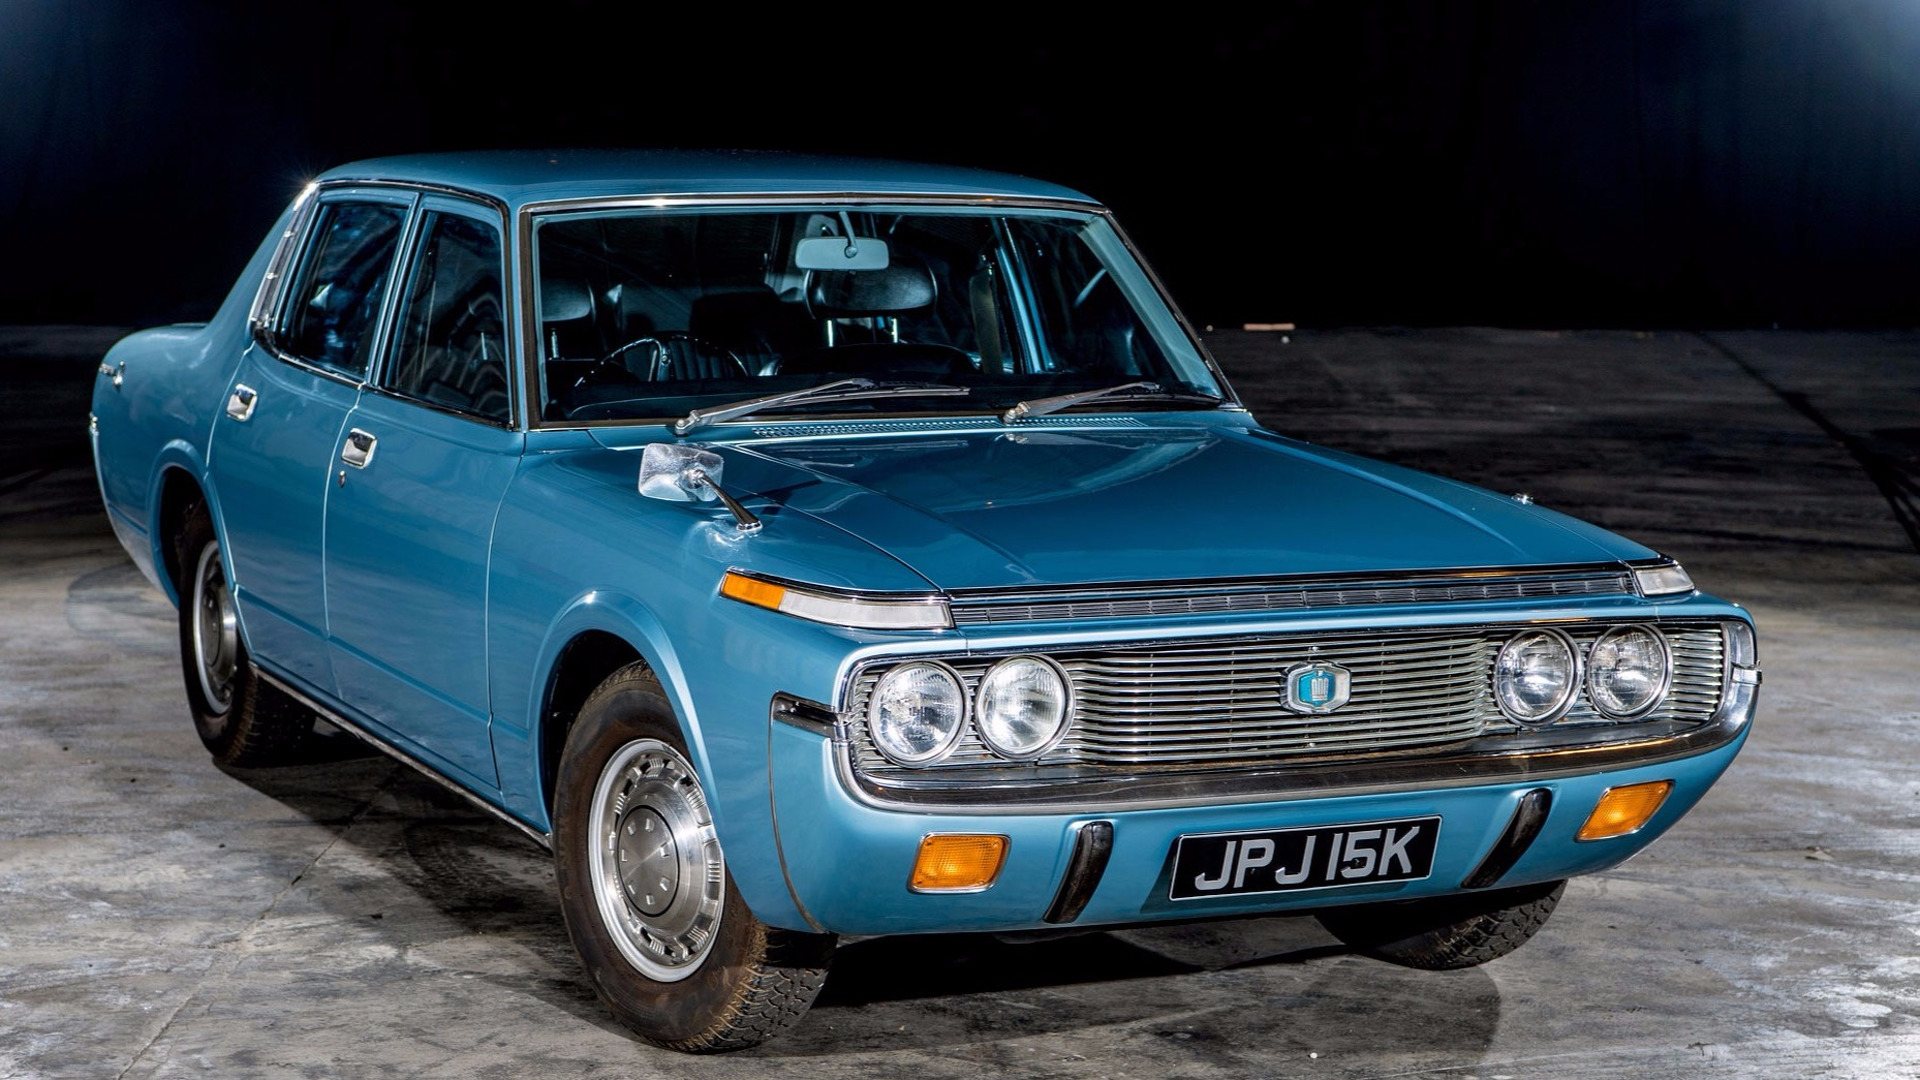 Jdm Cars For Sale >> Rare 1972 Toyota Crown revived, reunited with family